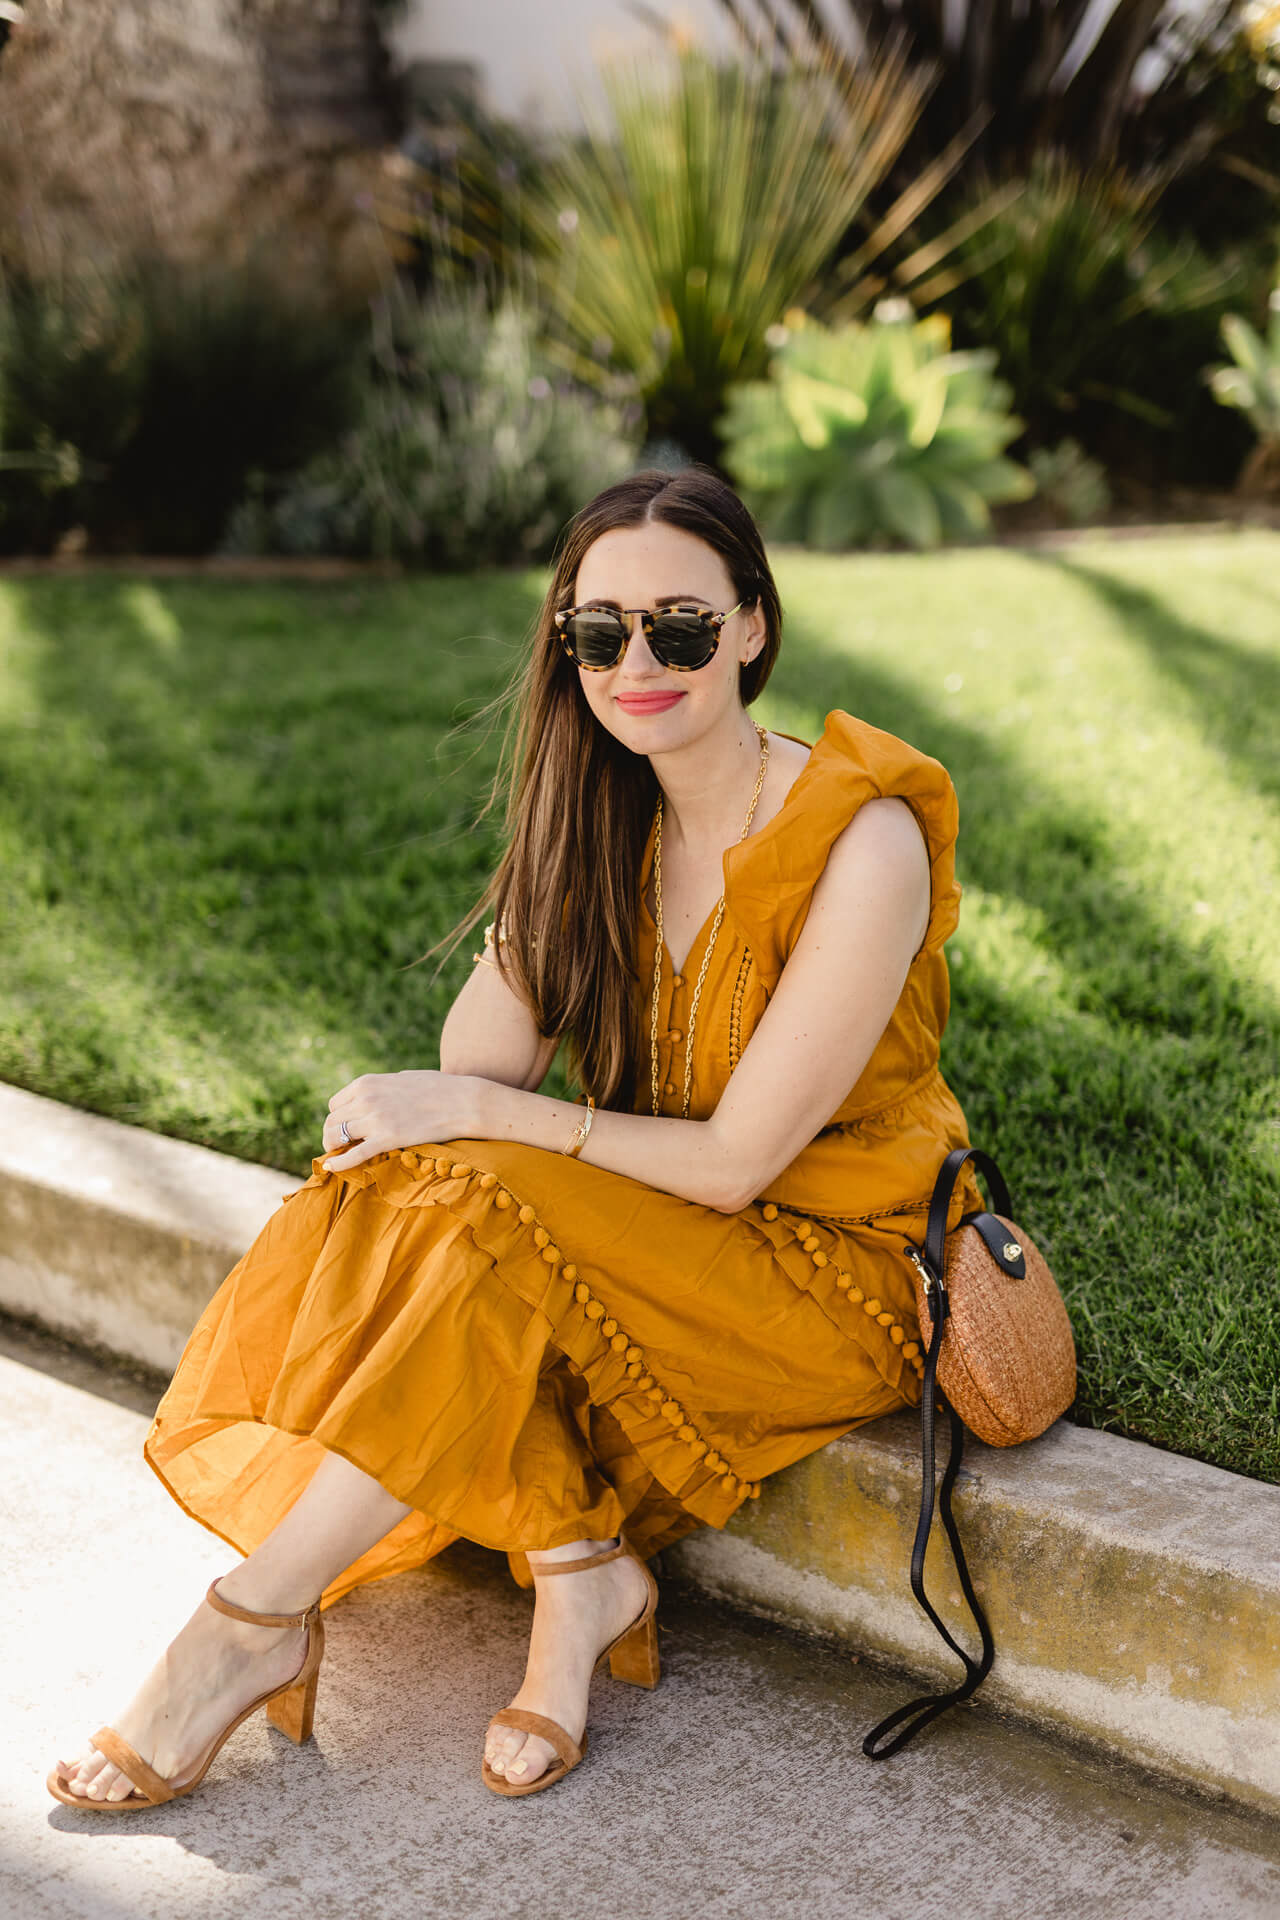 A fun yellow dress is one of my favorite spring trends! - M Loves M